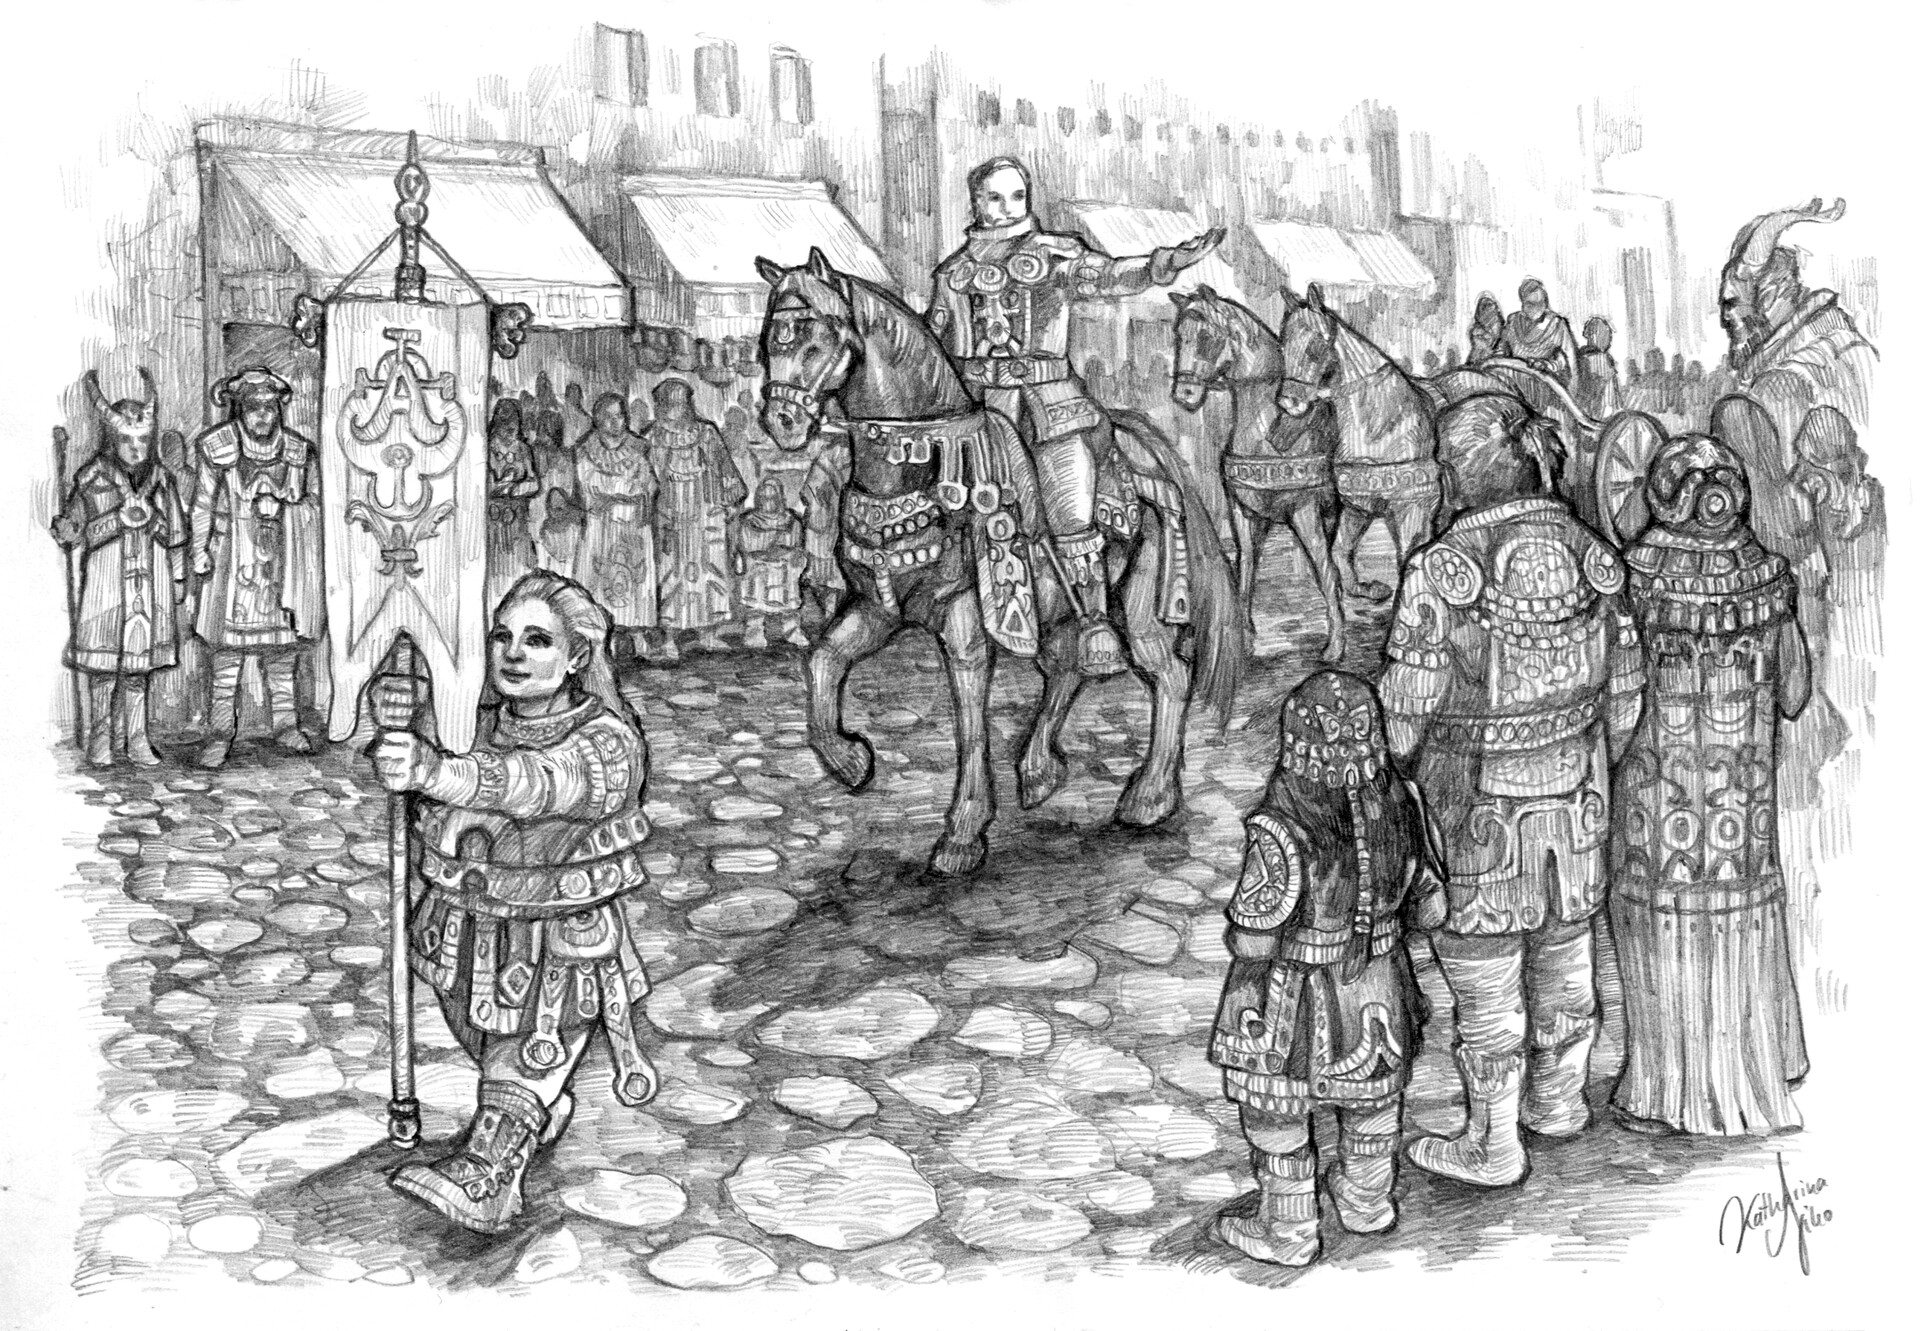 EARTHDAWN: A parade through the streets of a famous merchant